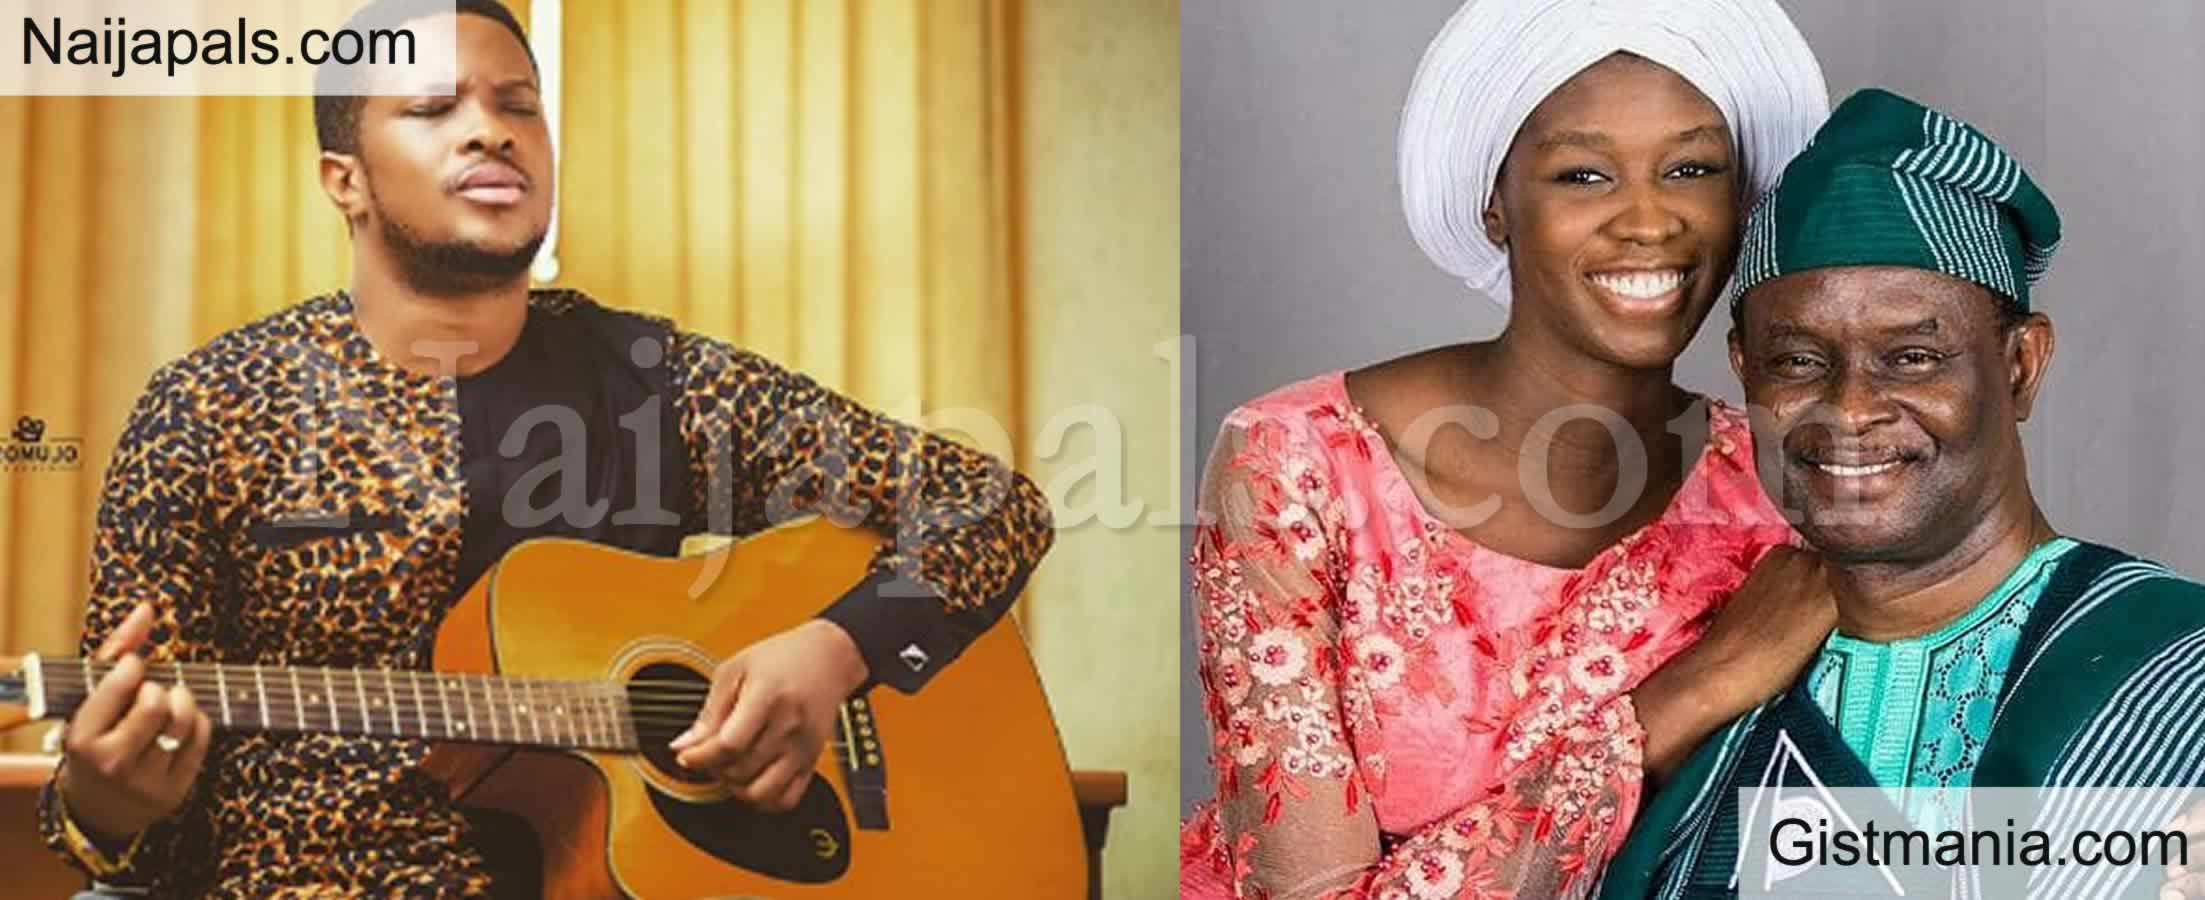 <img alt='.' class='lazyload' data-src='https://img.gistmania.com/emot/love.gif' /> <b>Mike Bamiloye's Daughter, Darasimi Set to Wed Music Minister, Lawrence Oyor Next Month</b> (Photos)